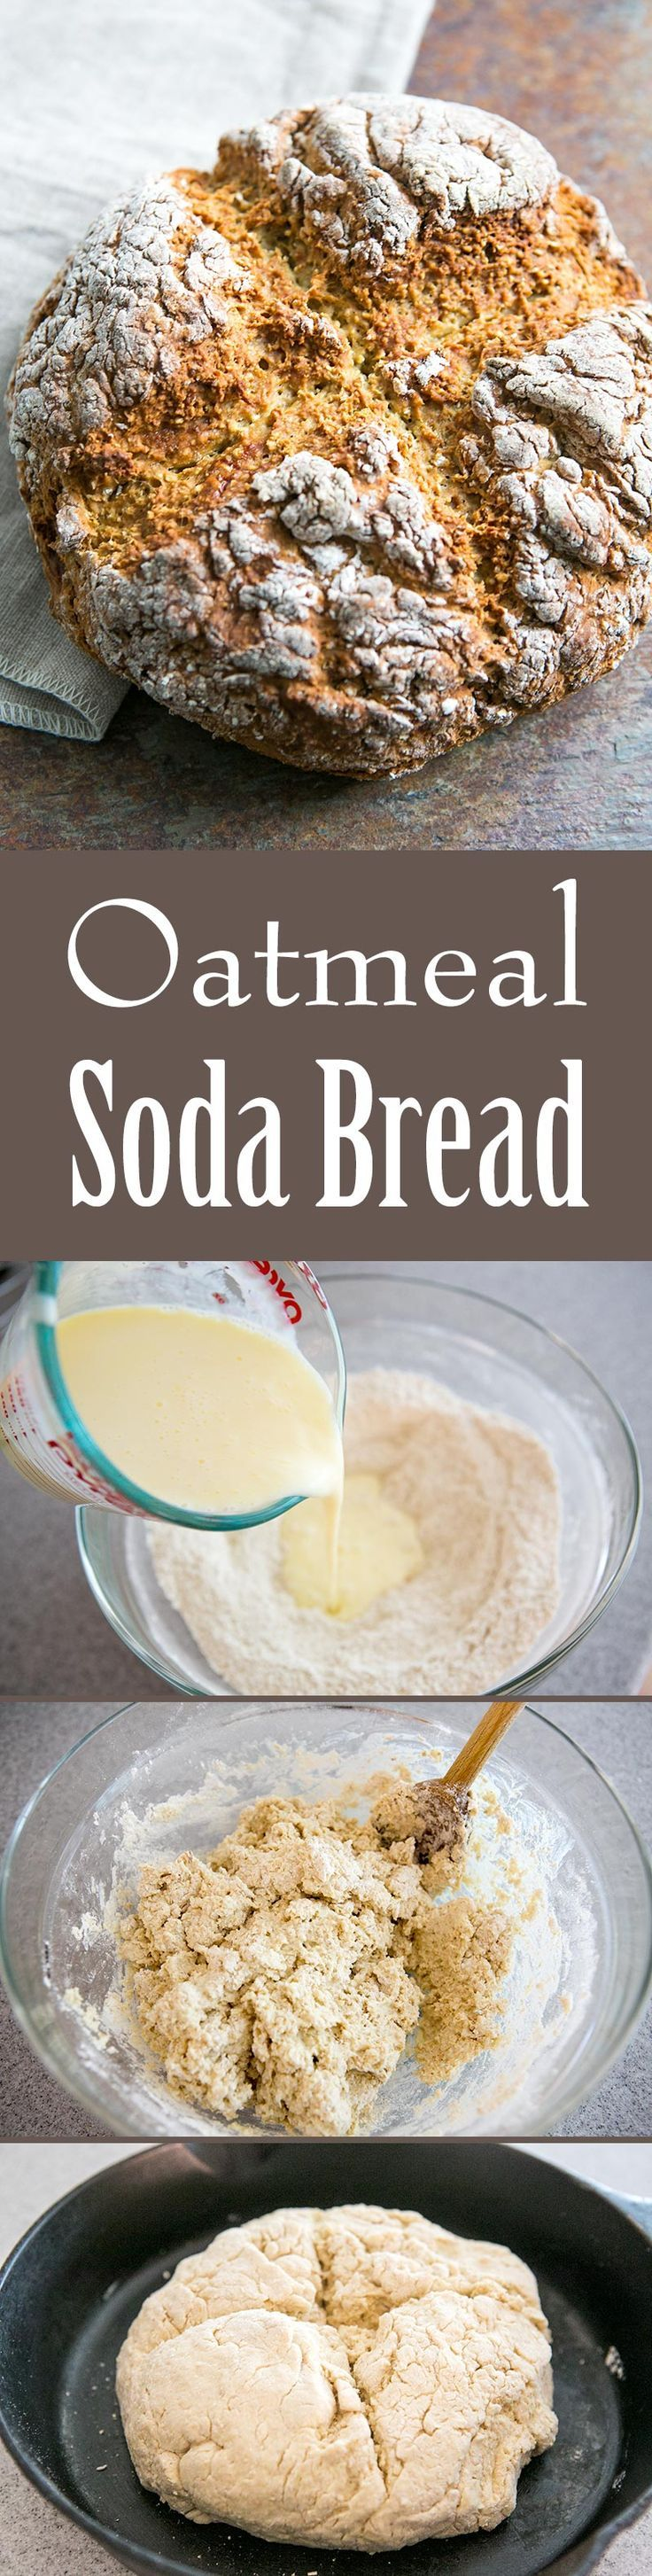 Oatmeal soda bread! An easy quick bread made with finely ground rolled oats, flour, buttermilk, egg, and baking soda. Perfect for St Patrick's Day! On http://SimplyRecipes.com